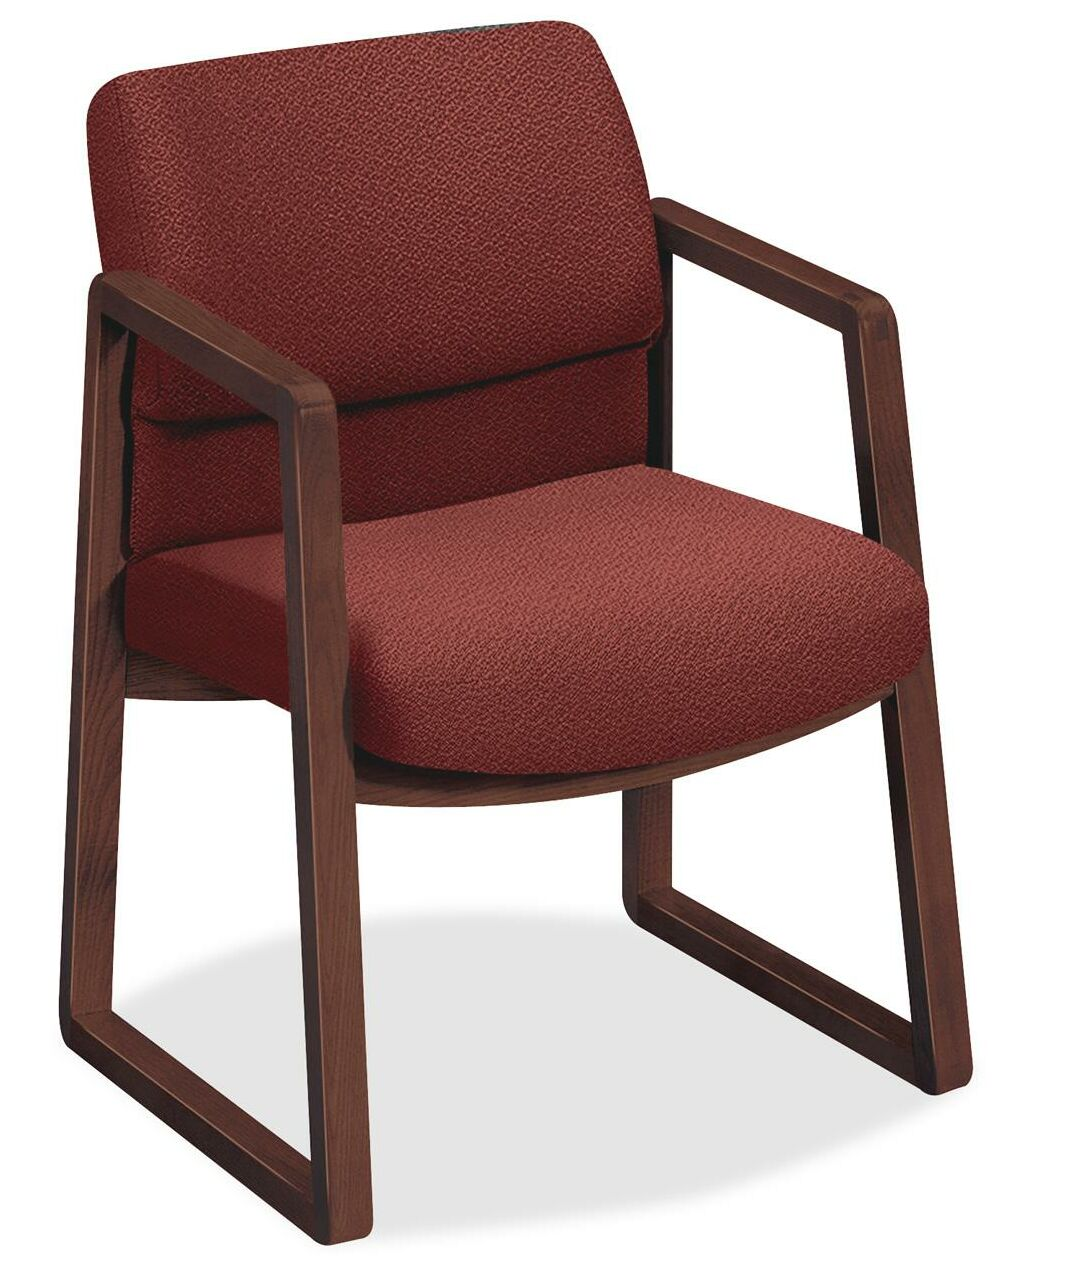 2403 Sled Base Arm Guest Chair Seat Color: Burgundy